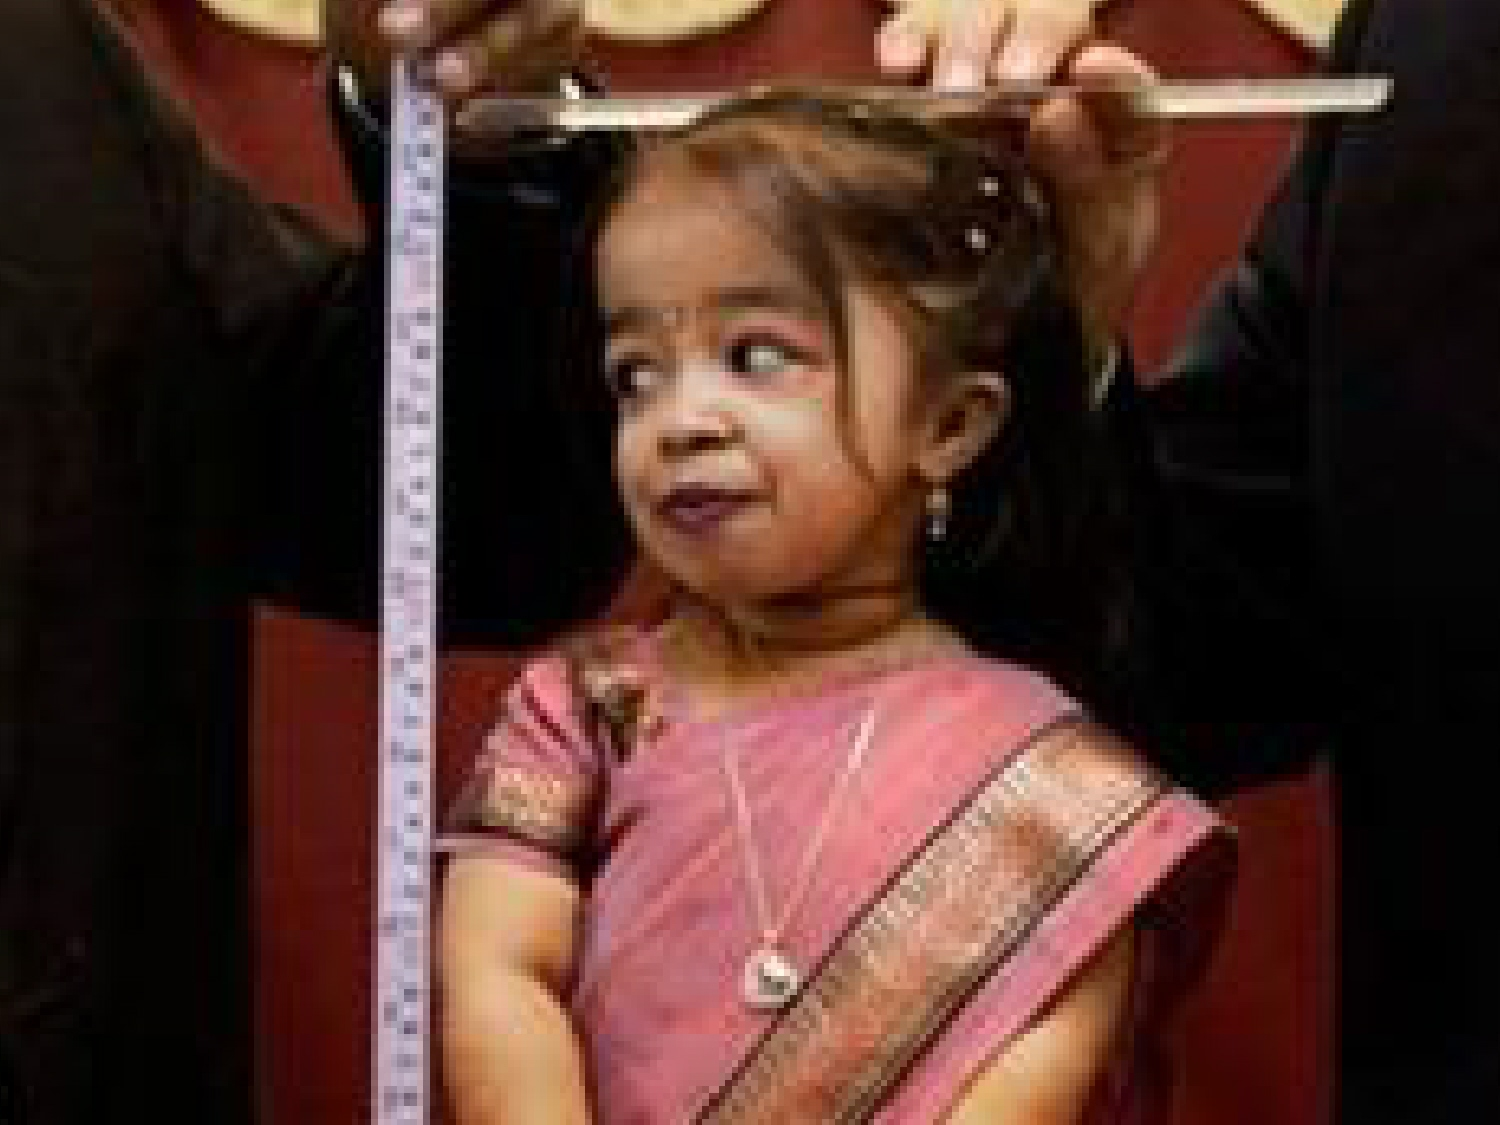 World's Smallest Woman Jyoti Amge